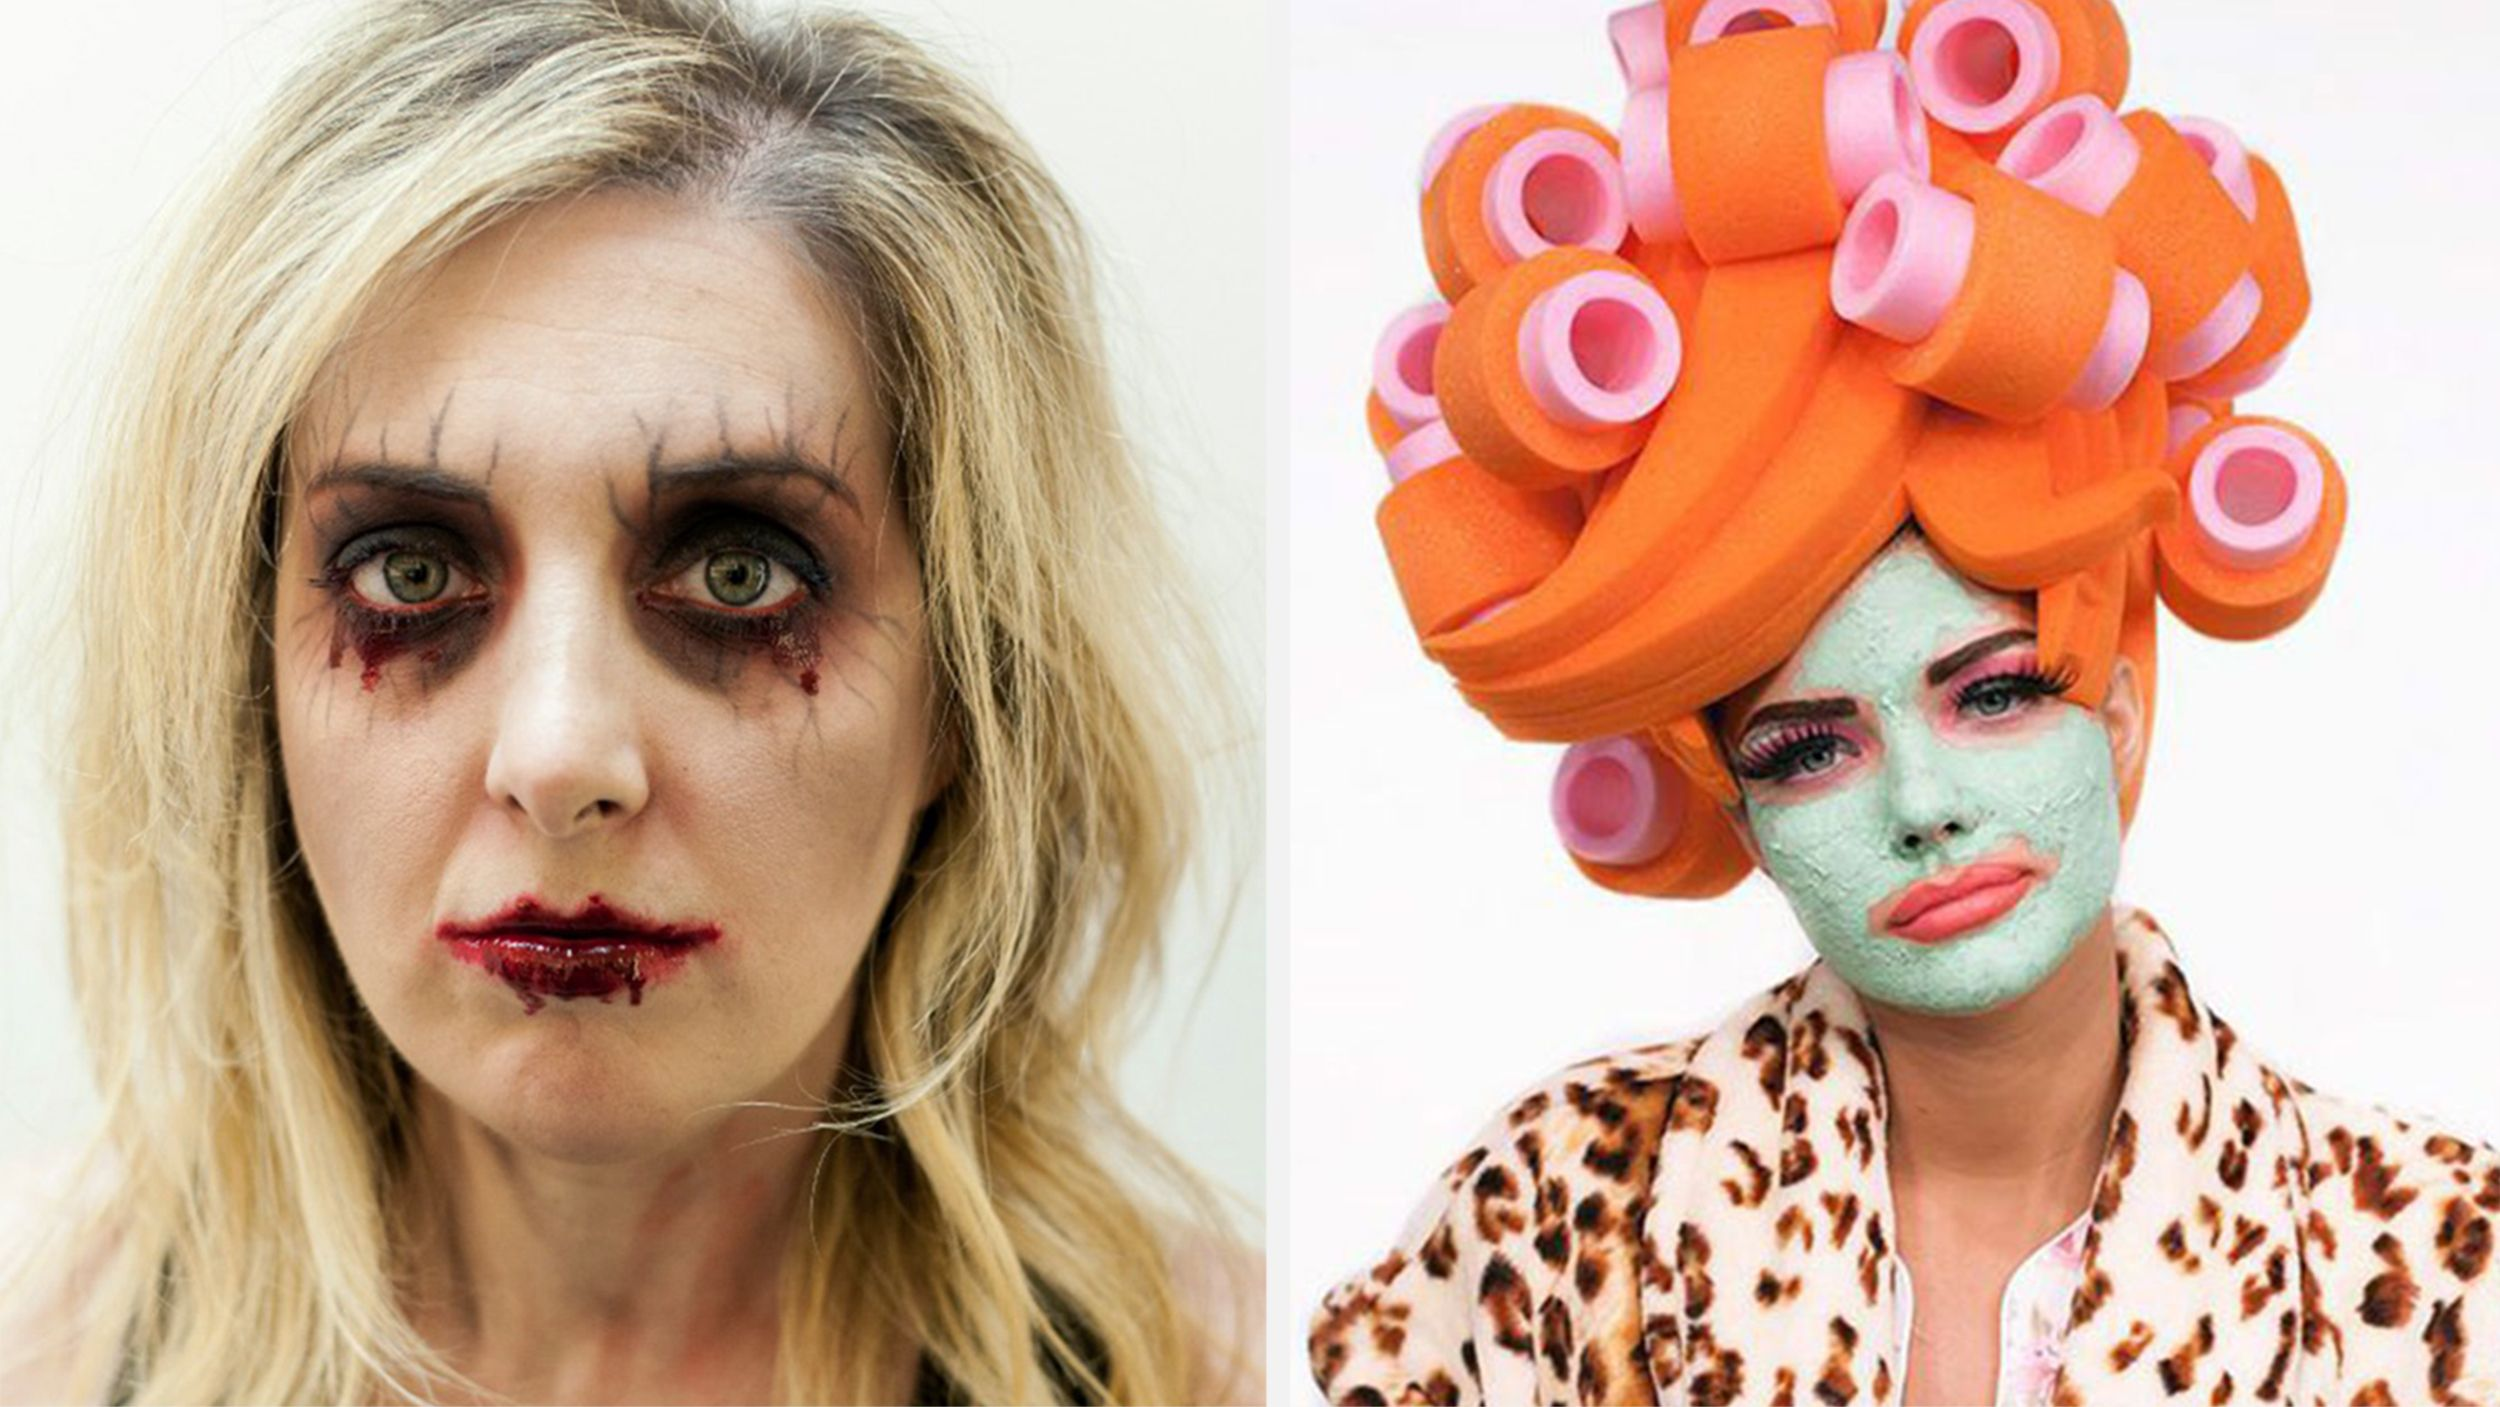 31 halloween makeup ideas that you can do in minutes halloween 31 halloween makeup ideas that you can do in minutes solutioingenieria Images